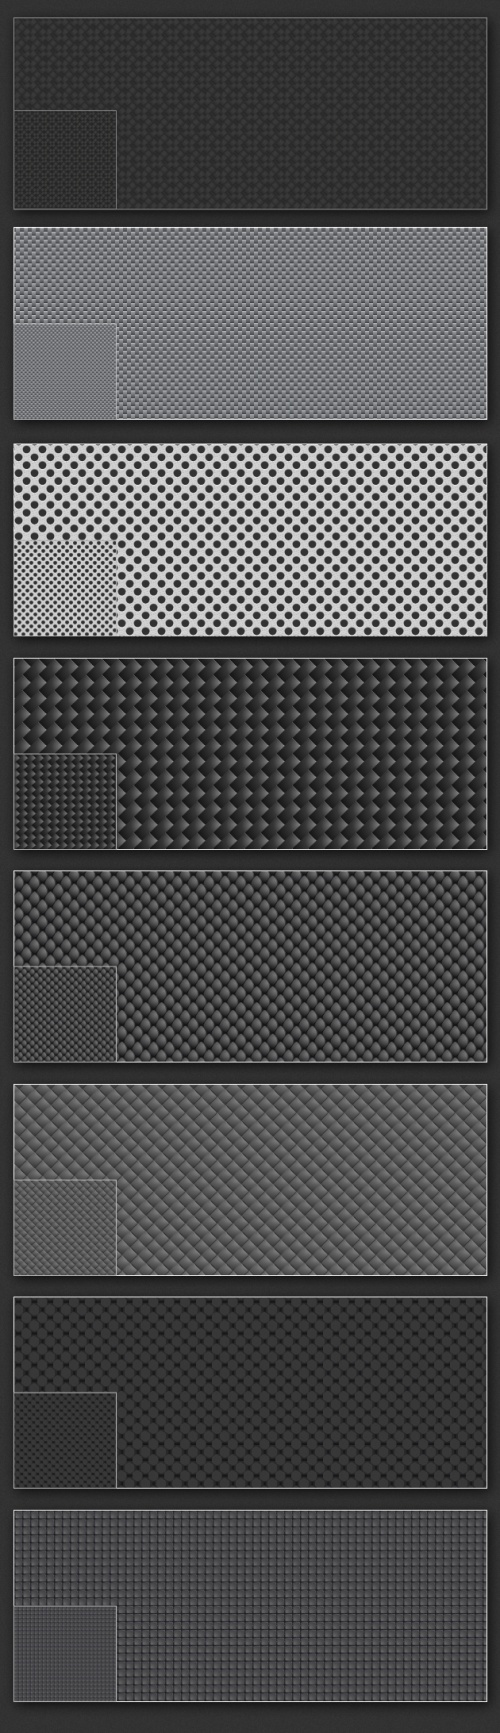 Designtnt - Vector Carbon Patterns